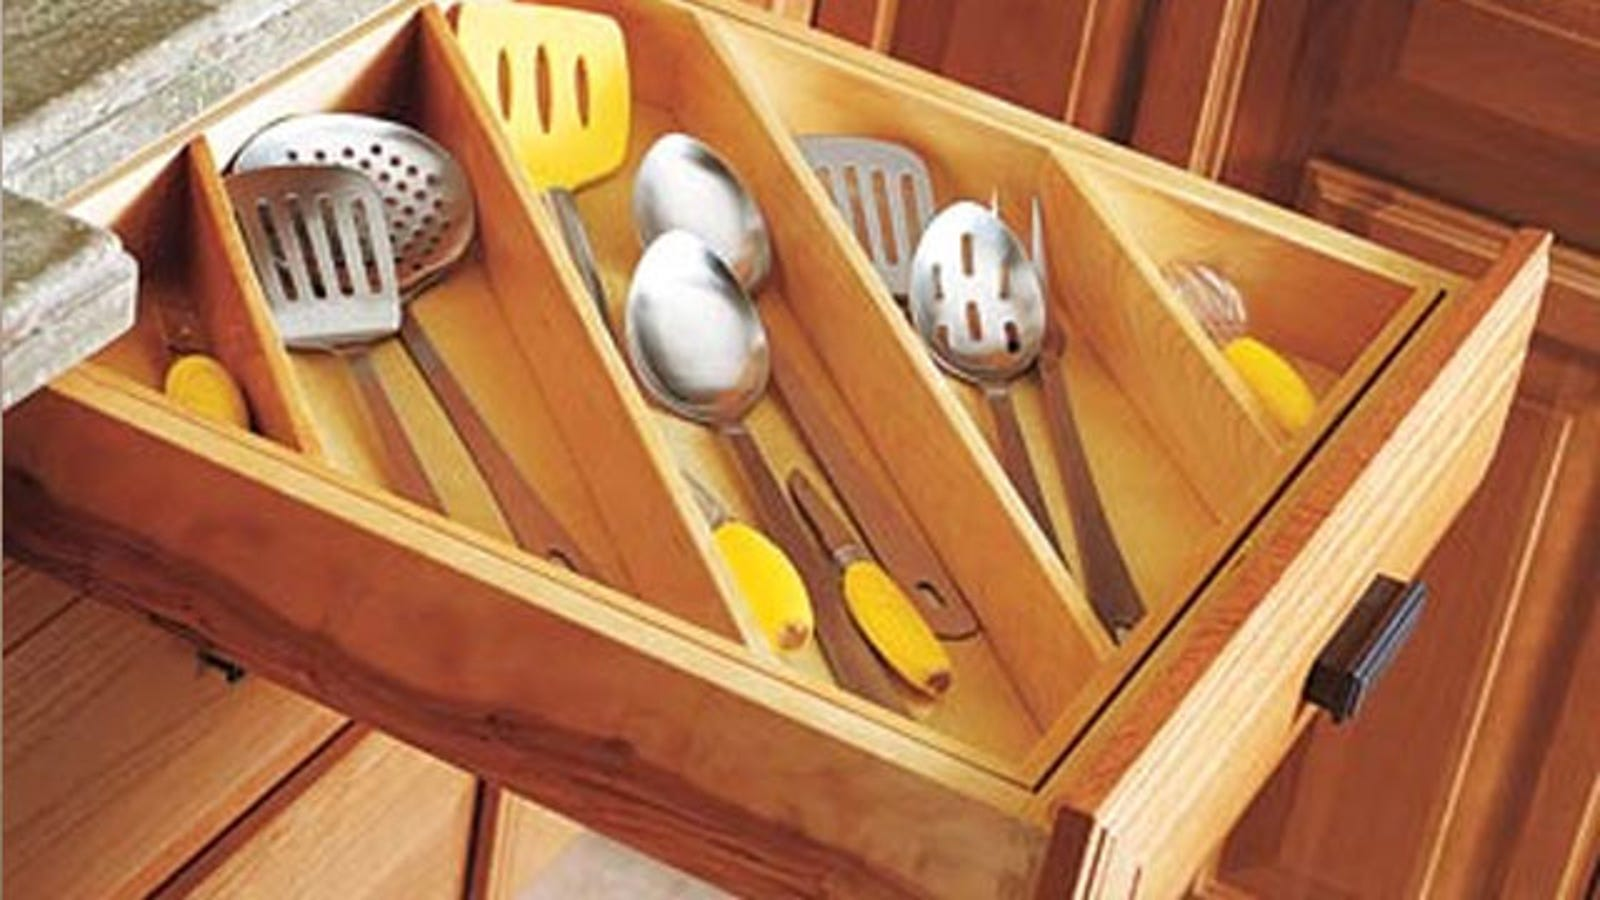 maximize kitchen drawer spacestoring utensils diagonally